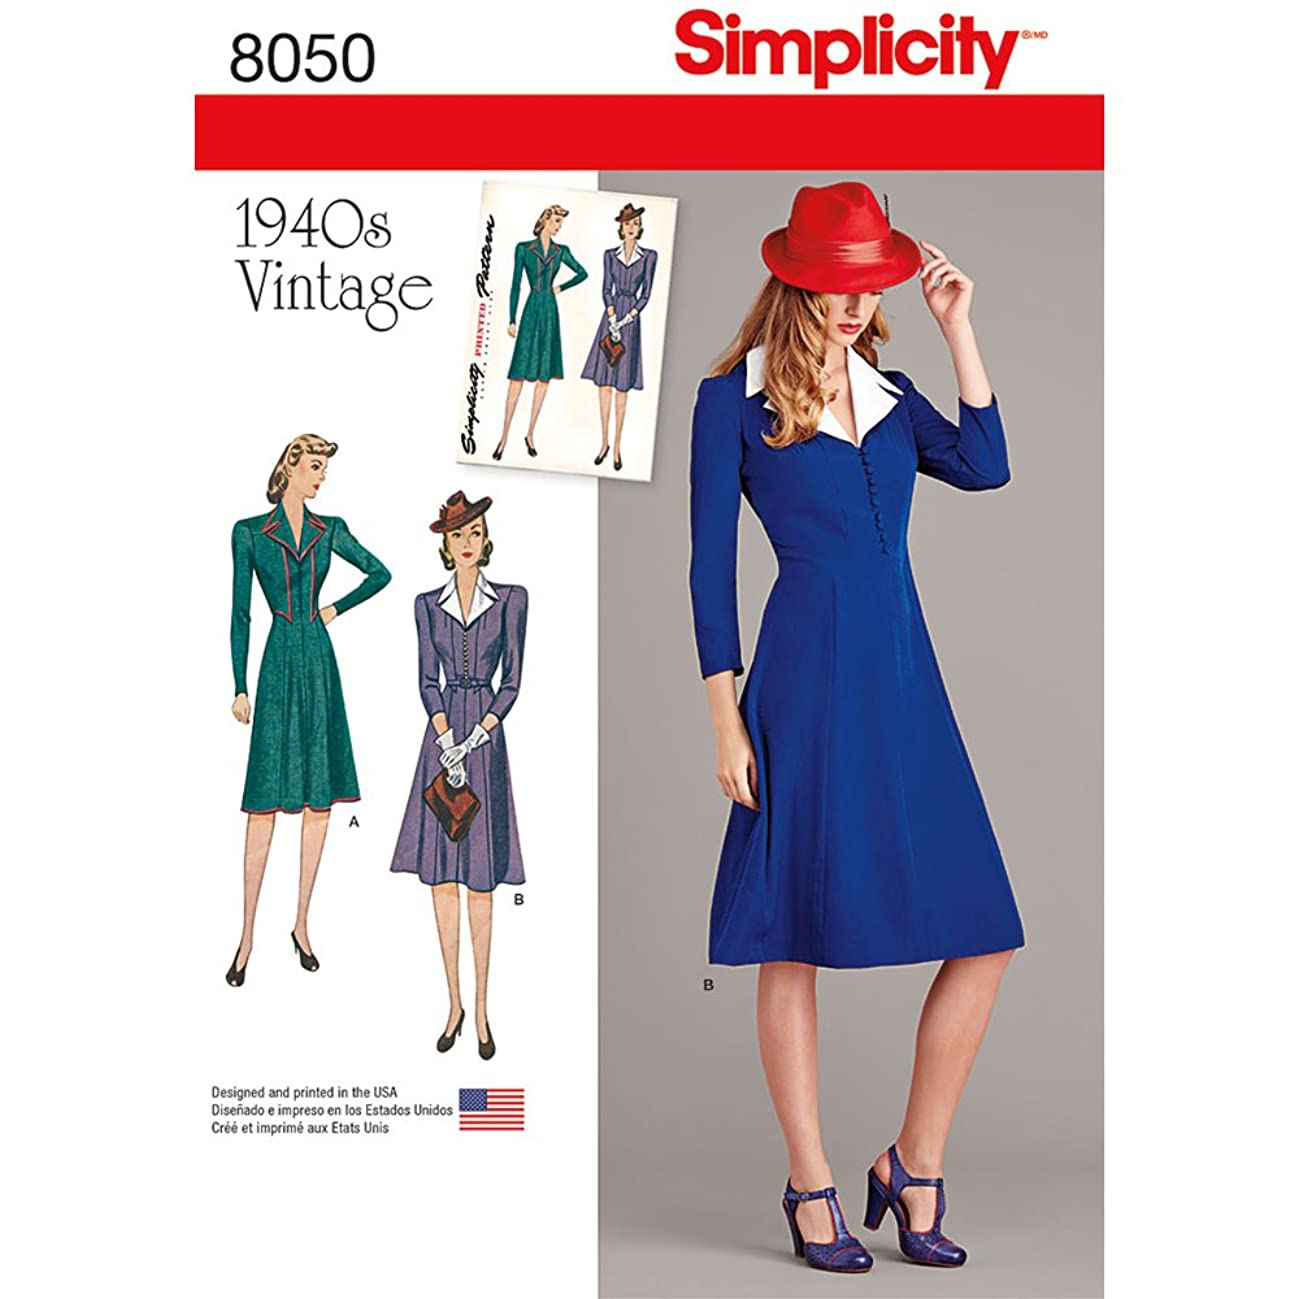 Simplicity 8050 1940's Vintage Fashion Women's Collared Dress Sewing Pattern, Sizes 6-14